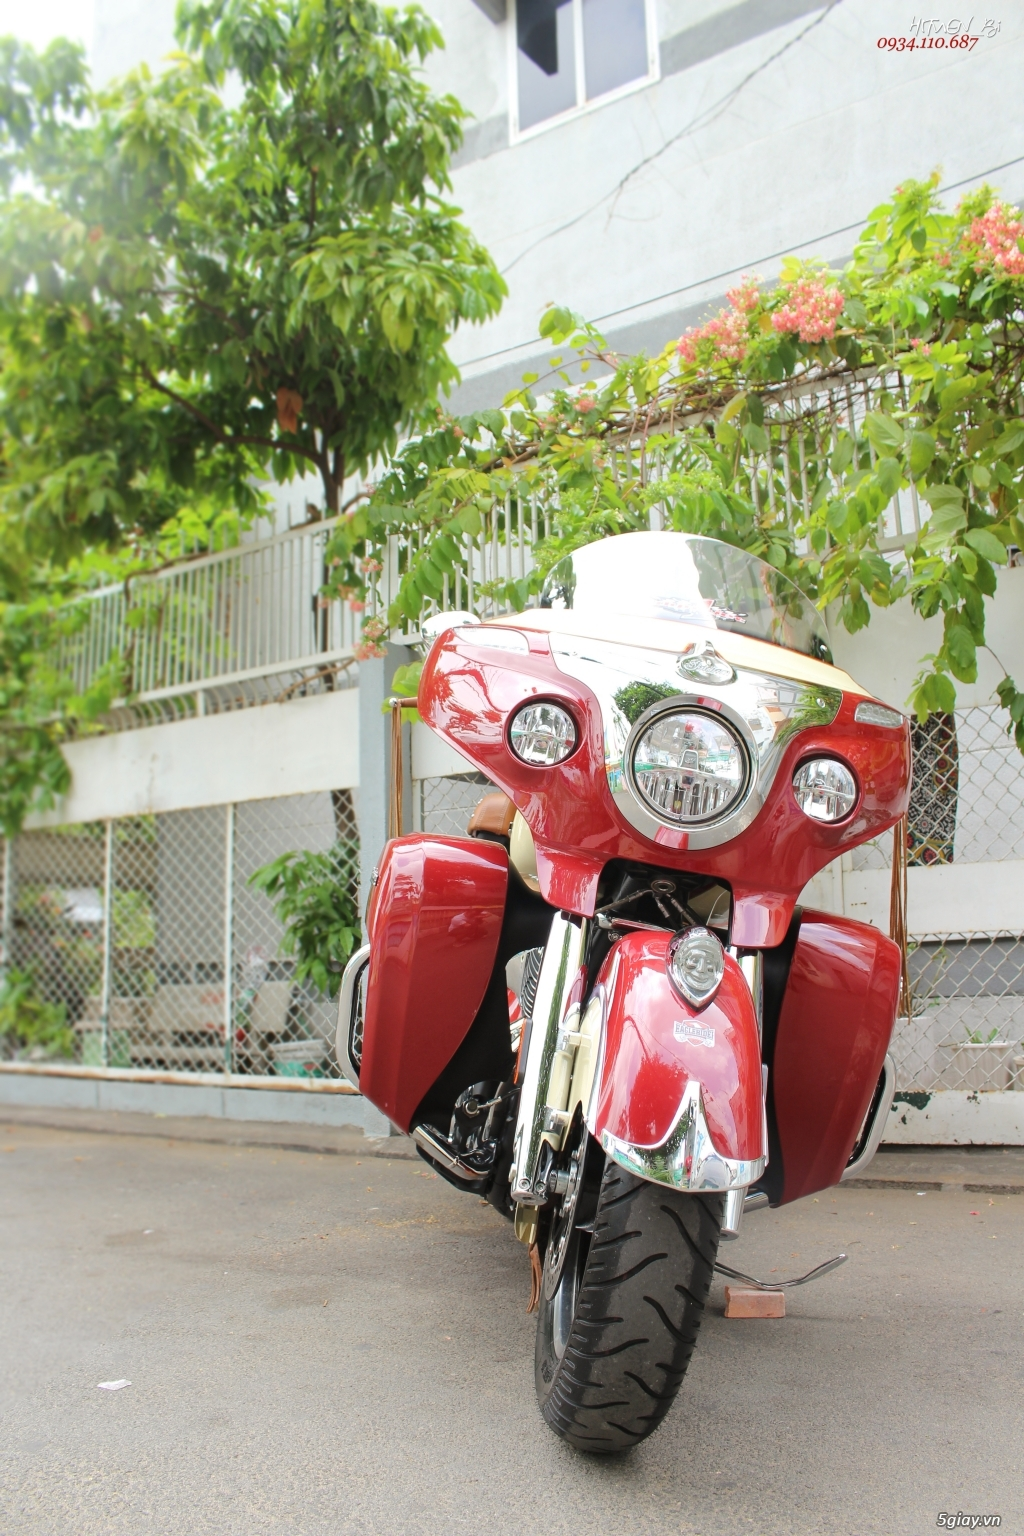 ___ Can Ban ___INDIAN Roadmaster Classic 1800cc ABS 2018 Keyless___ - 5